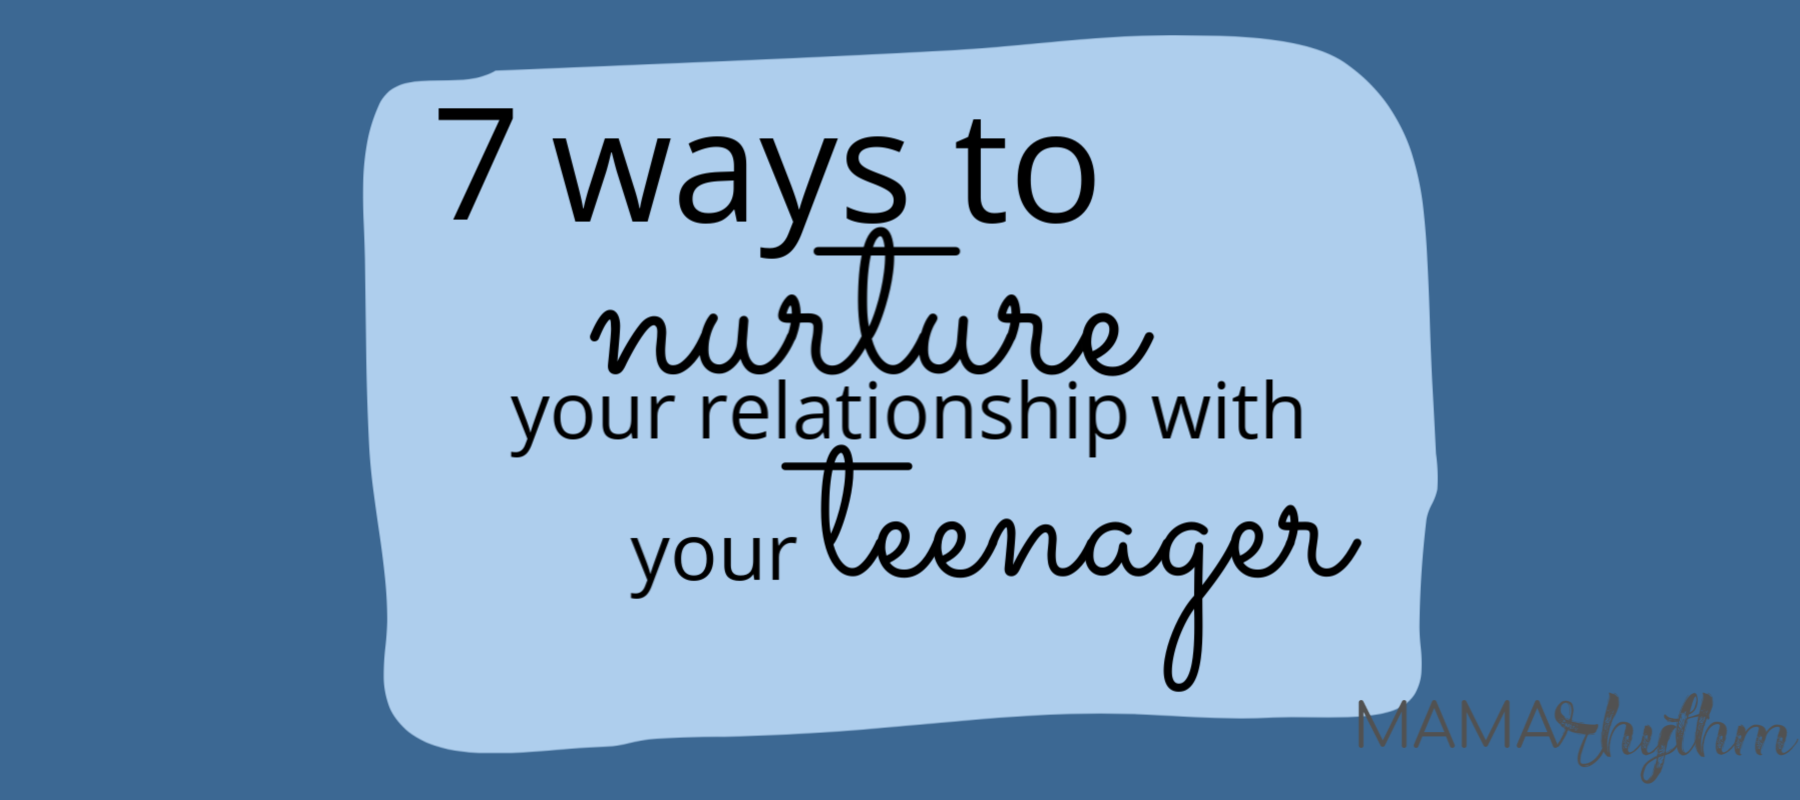 How can I build a better relationship with my teenager?